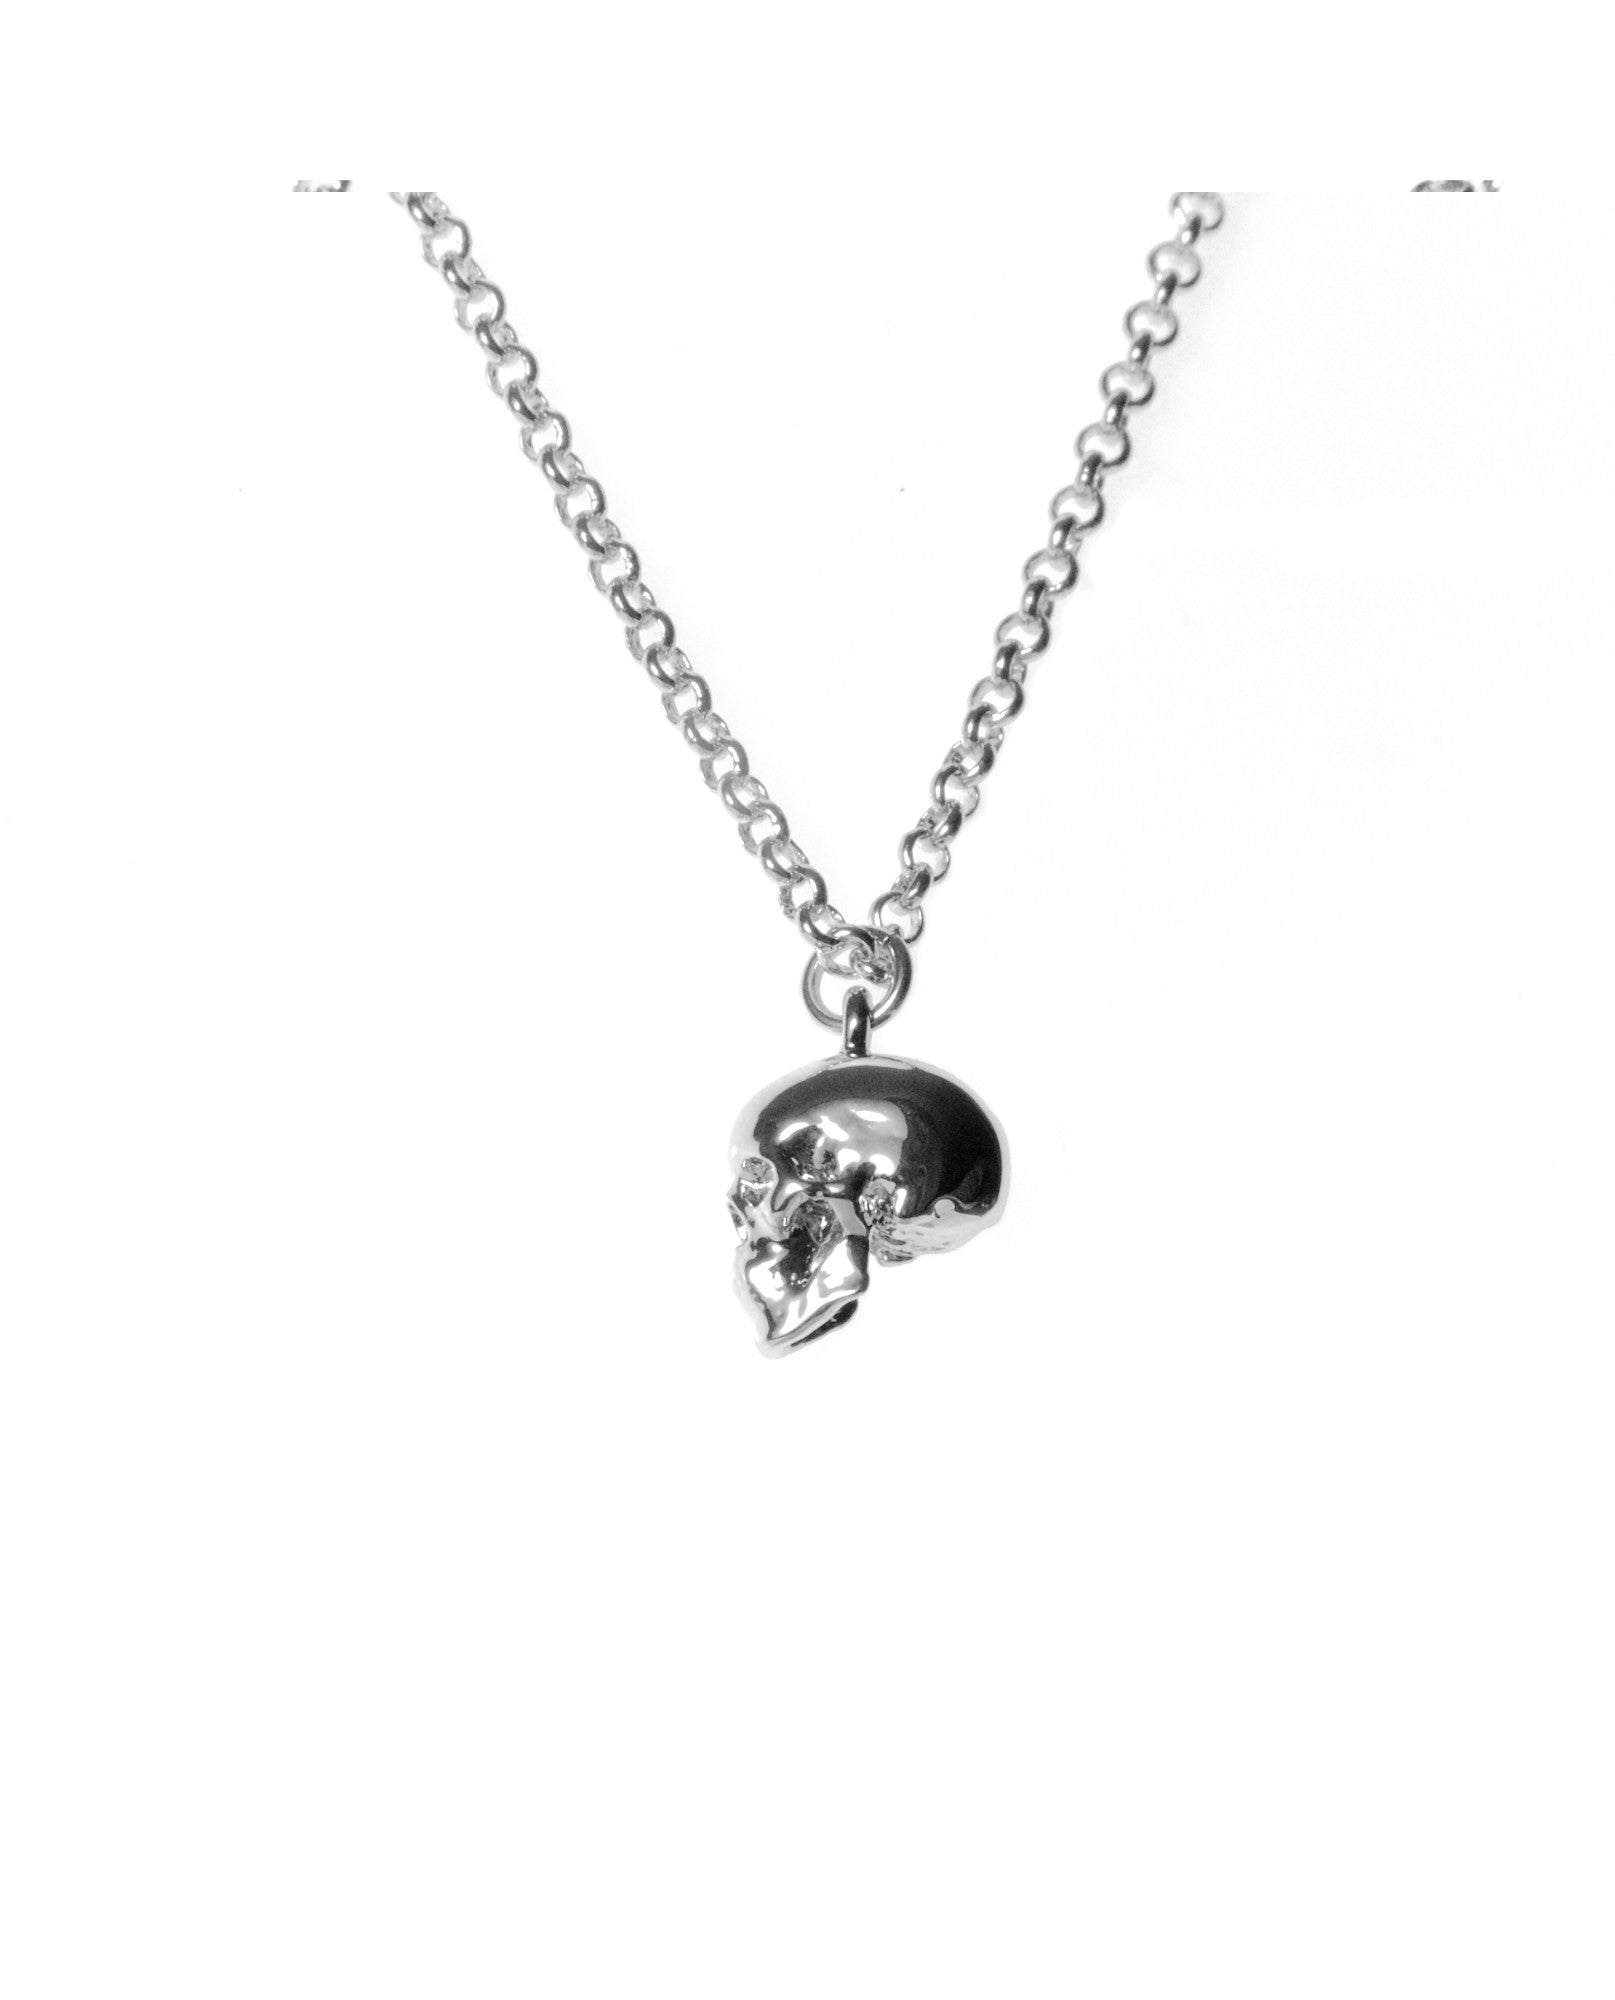 Roz Buehrlen - Silver Skull Necklace - The Velvet Closet